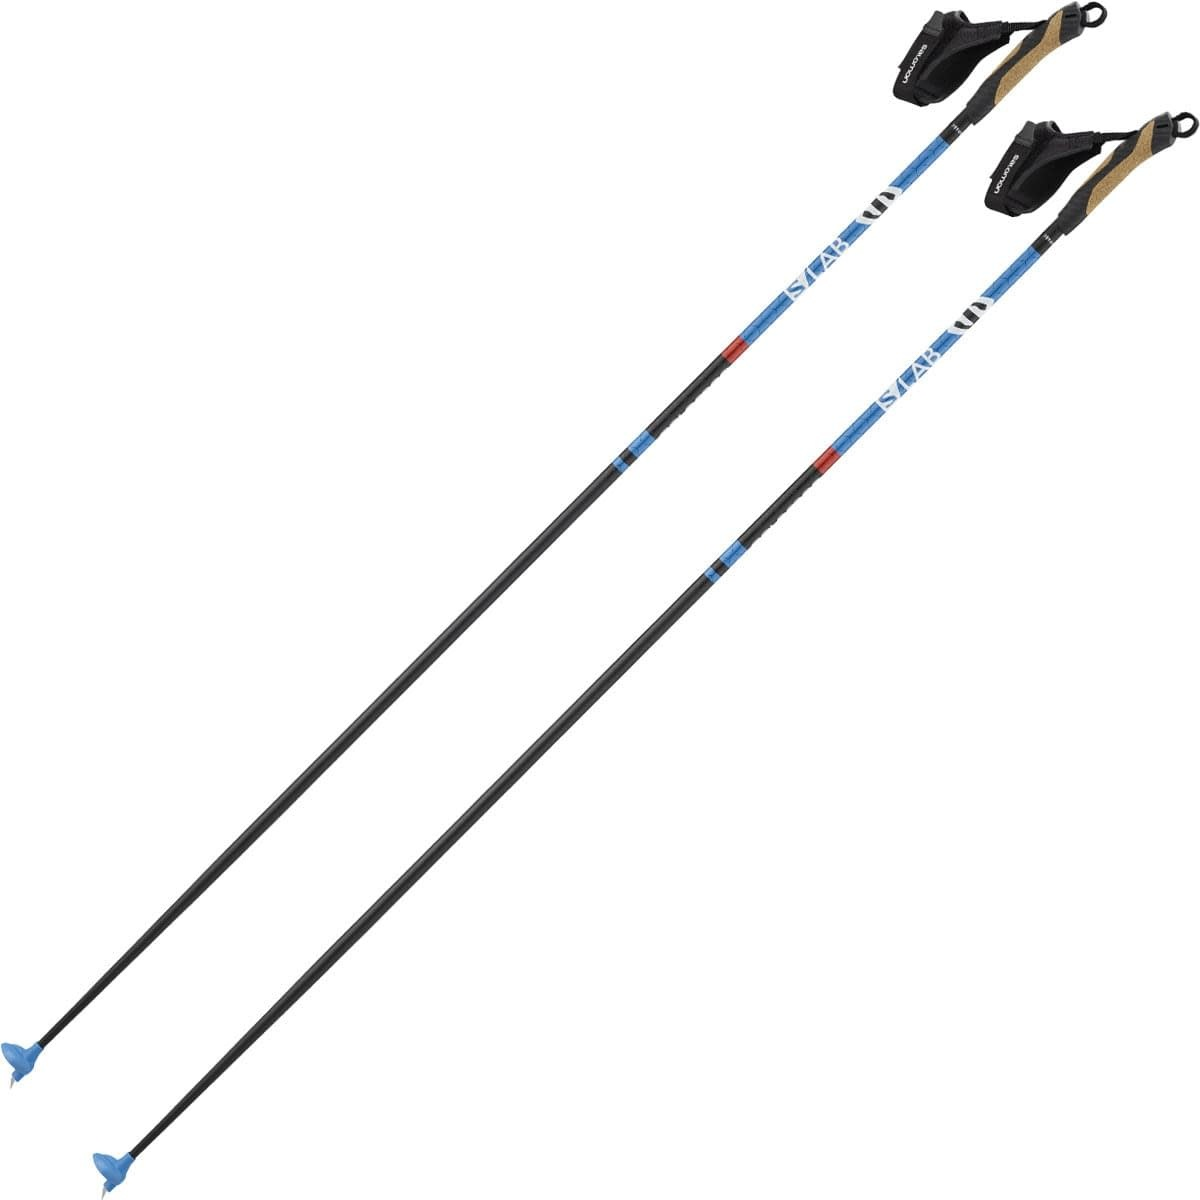 Salomon S/Lab Carbon Poles